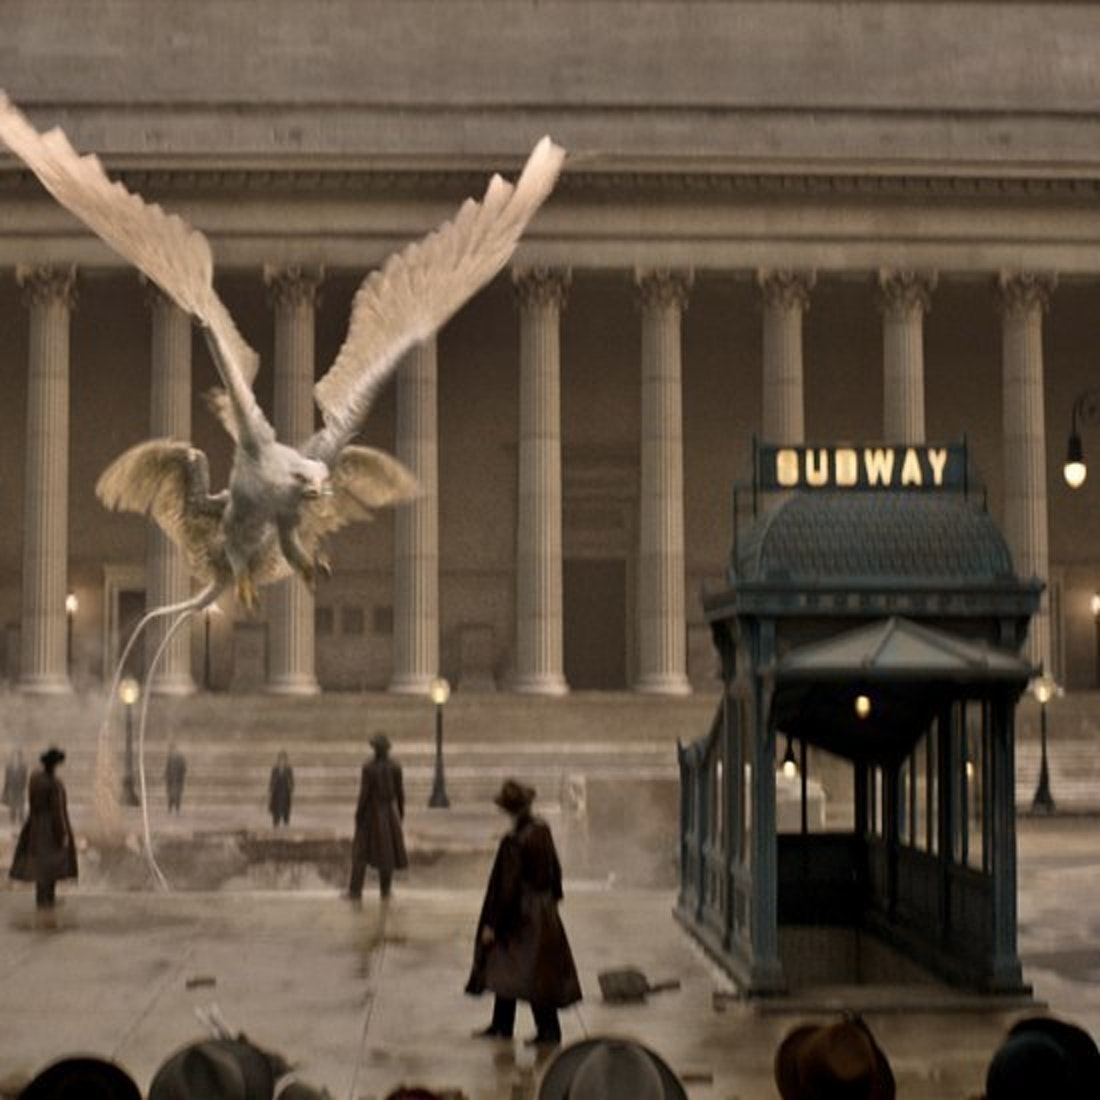 The Thunderbird in 'Fantastic Beasts and Where to Find Them'